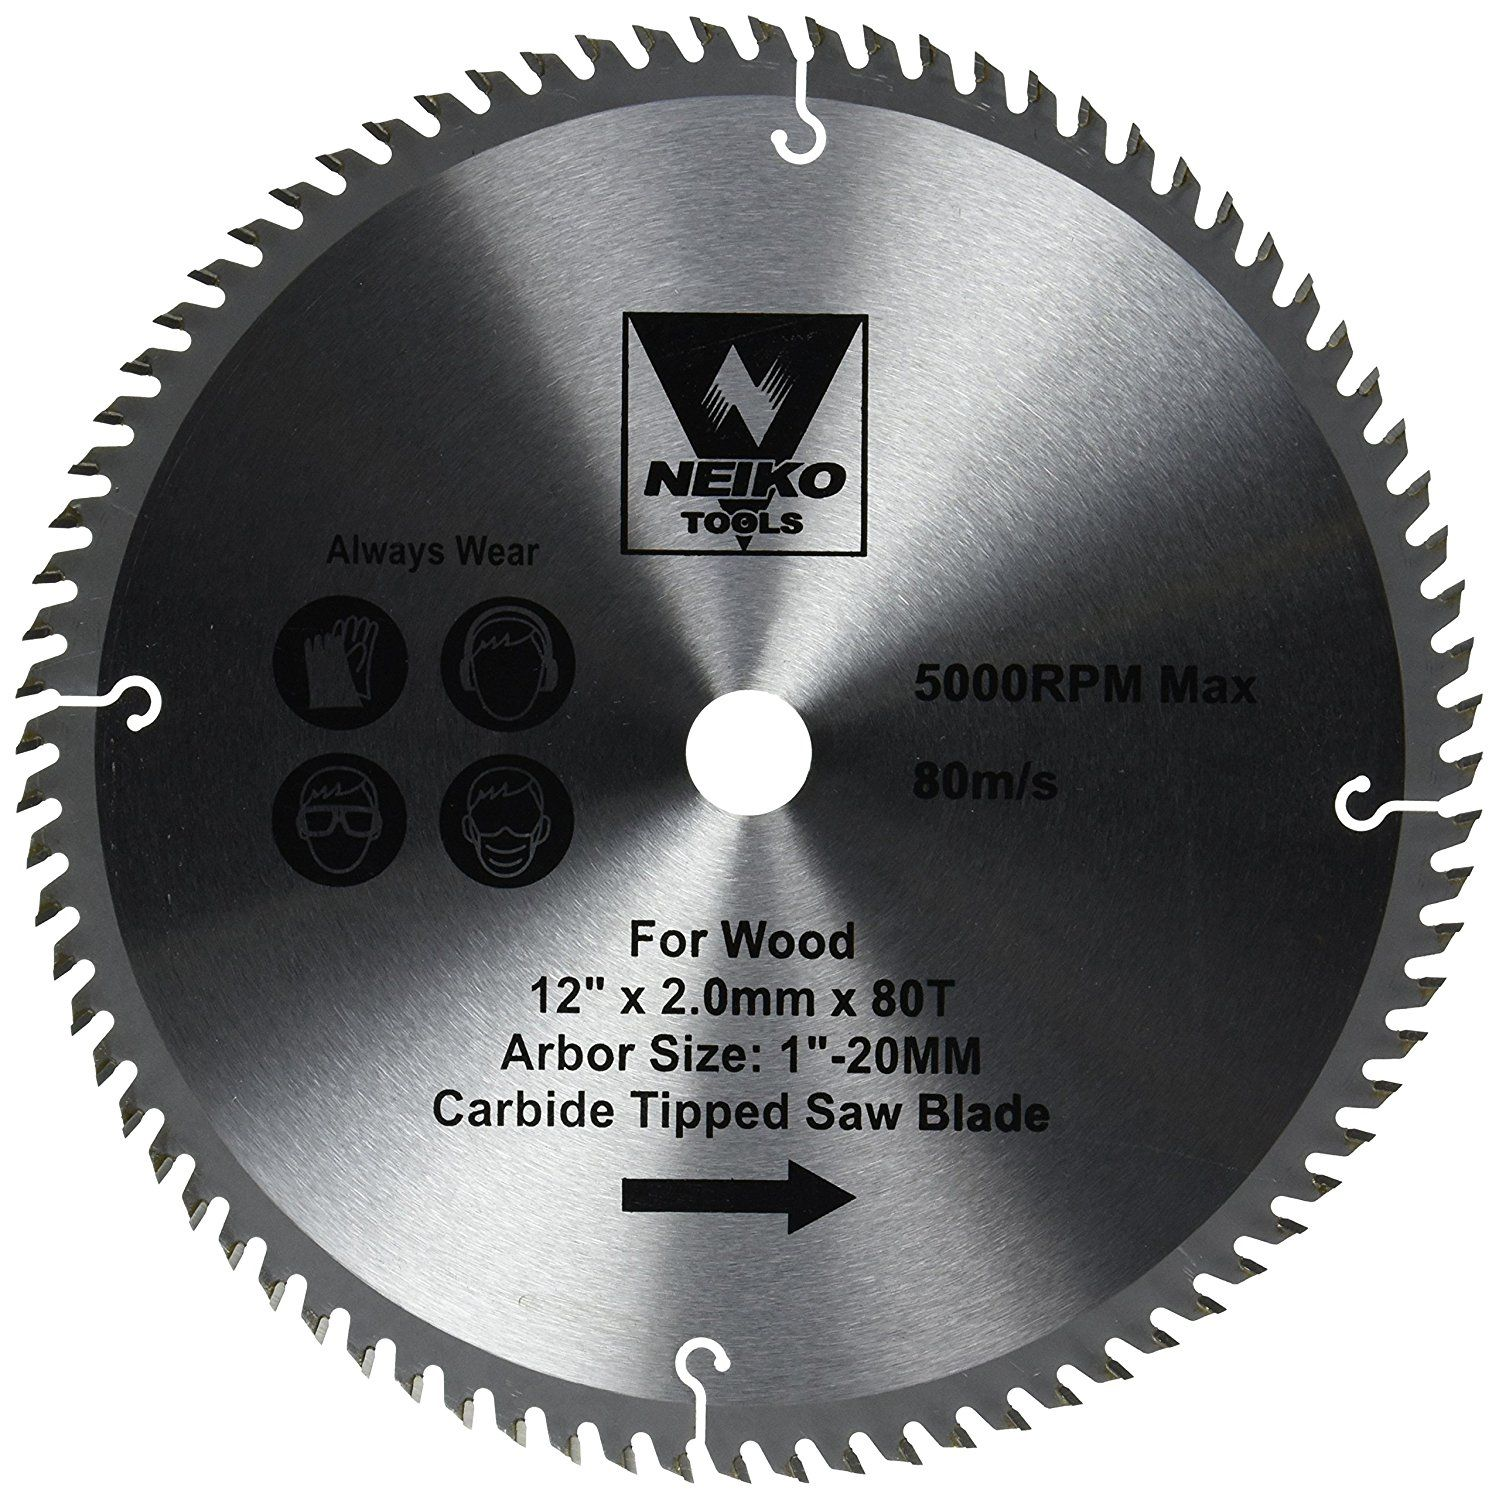 Neiko 10768a 80 T Carbide Saw Blade 12 You Can Get More Details By Clicking On The Image Saw Blade Table Saw Blades Circular Saw Blades